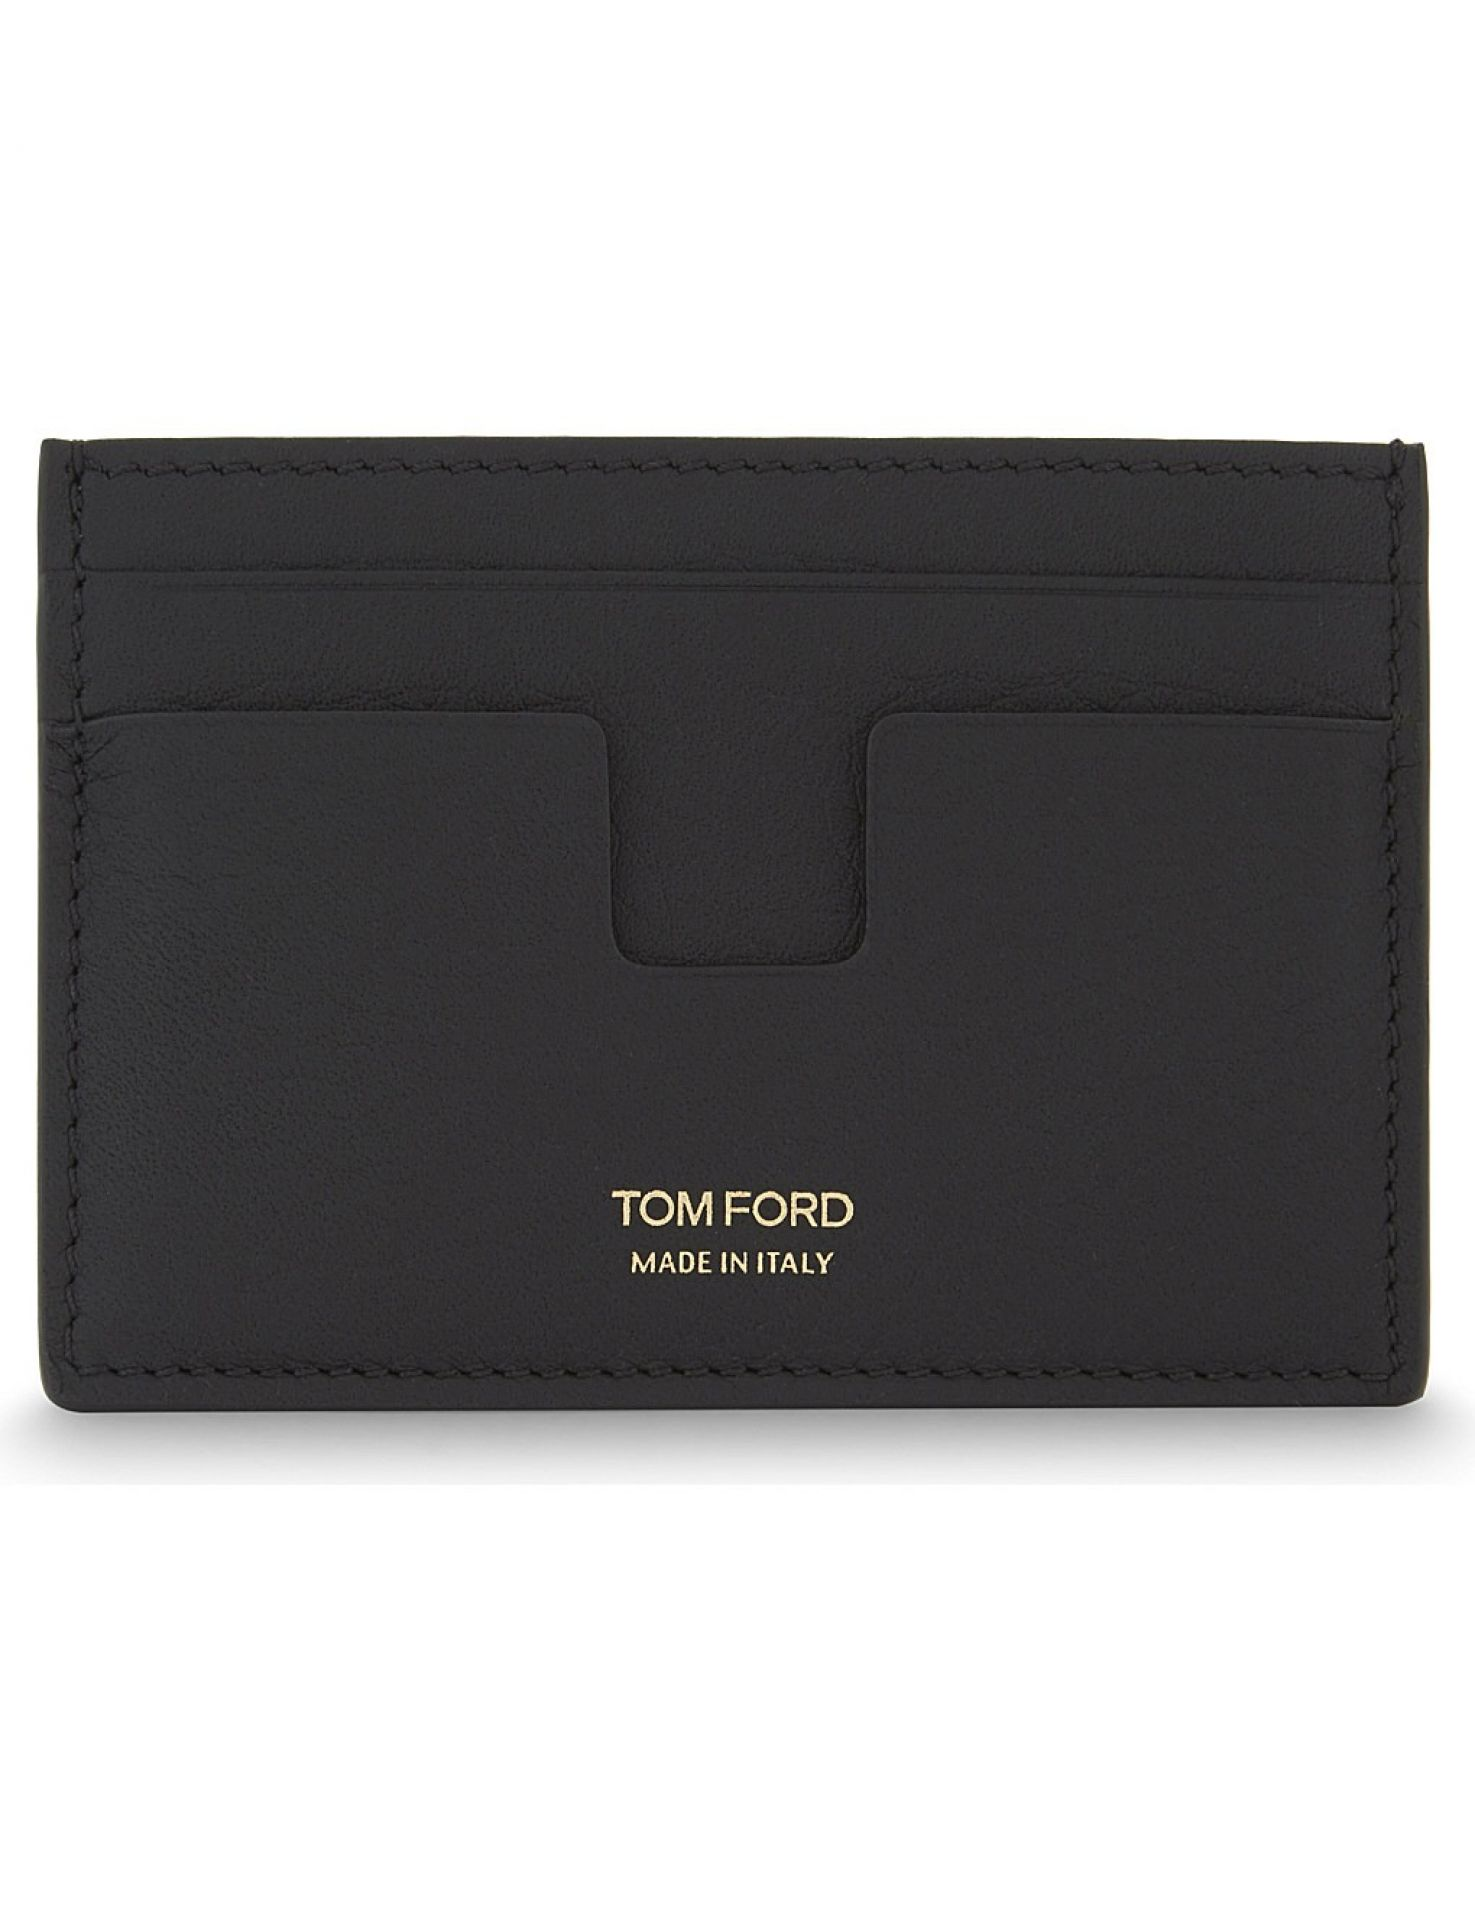 Tom Ford Grained Leather Credit Card Black Wallet Y0232T-C95